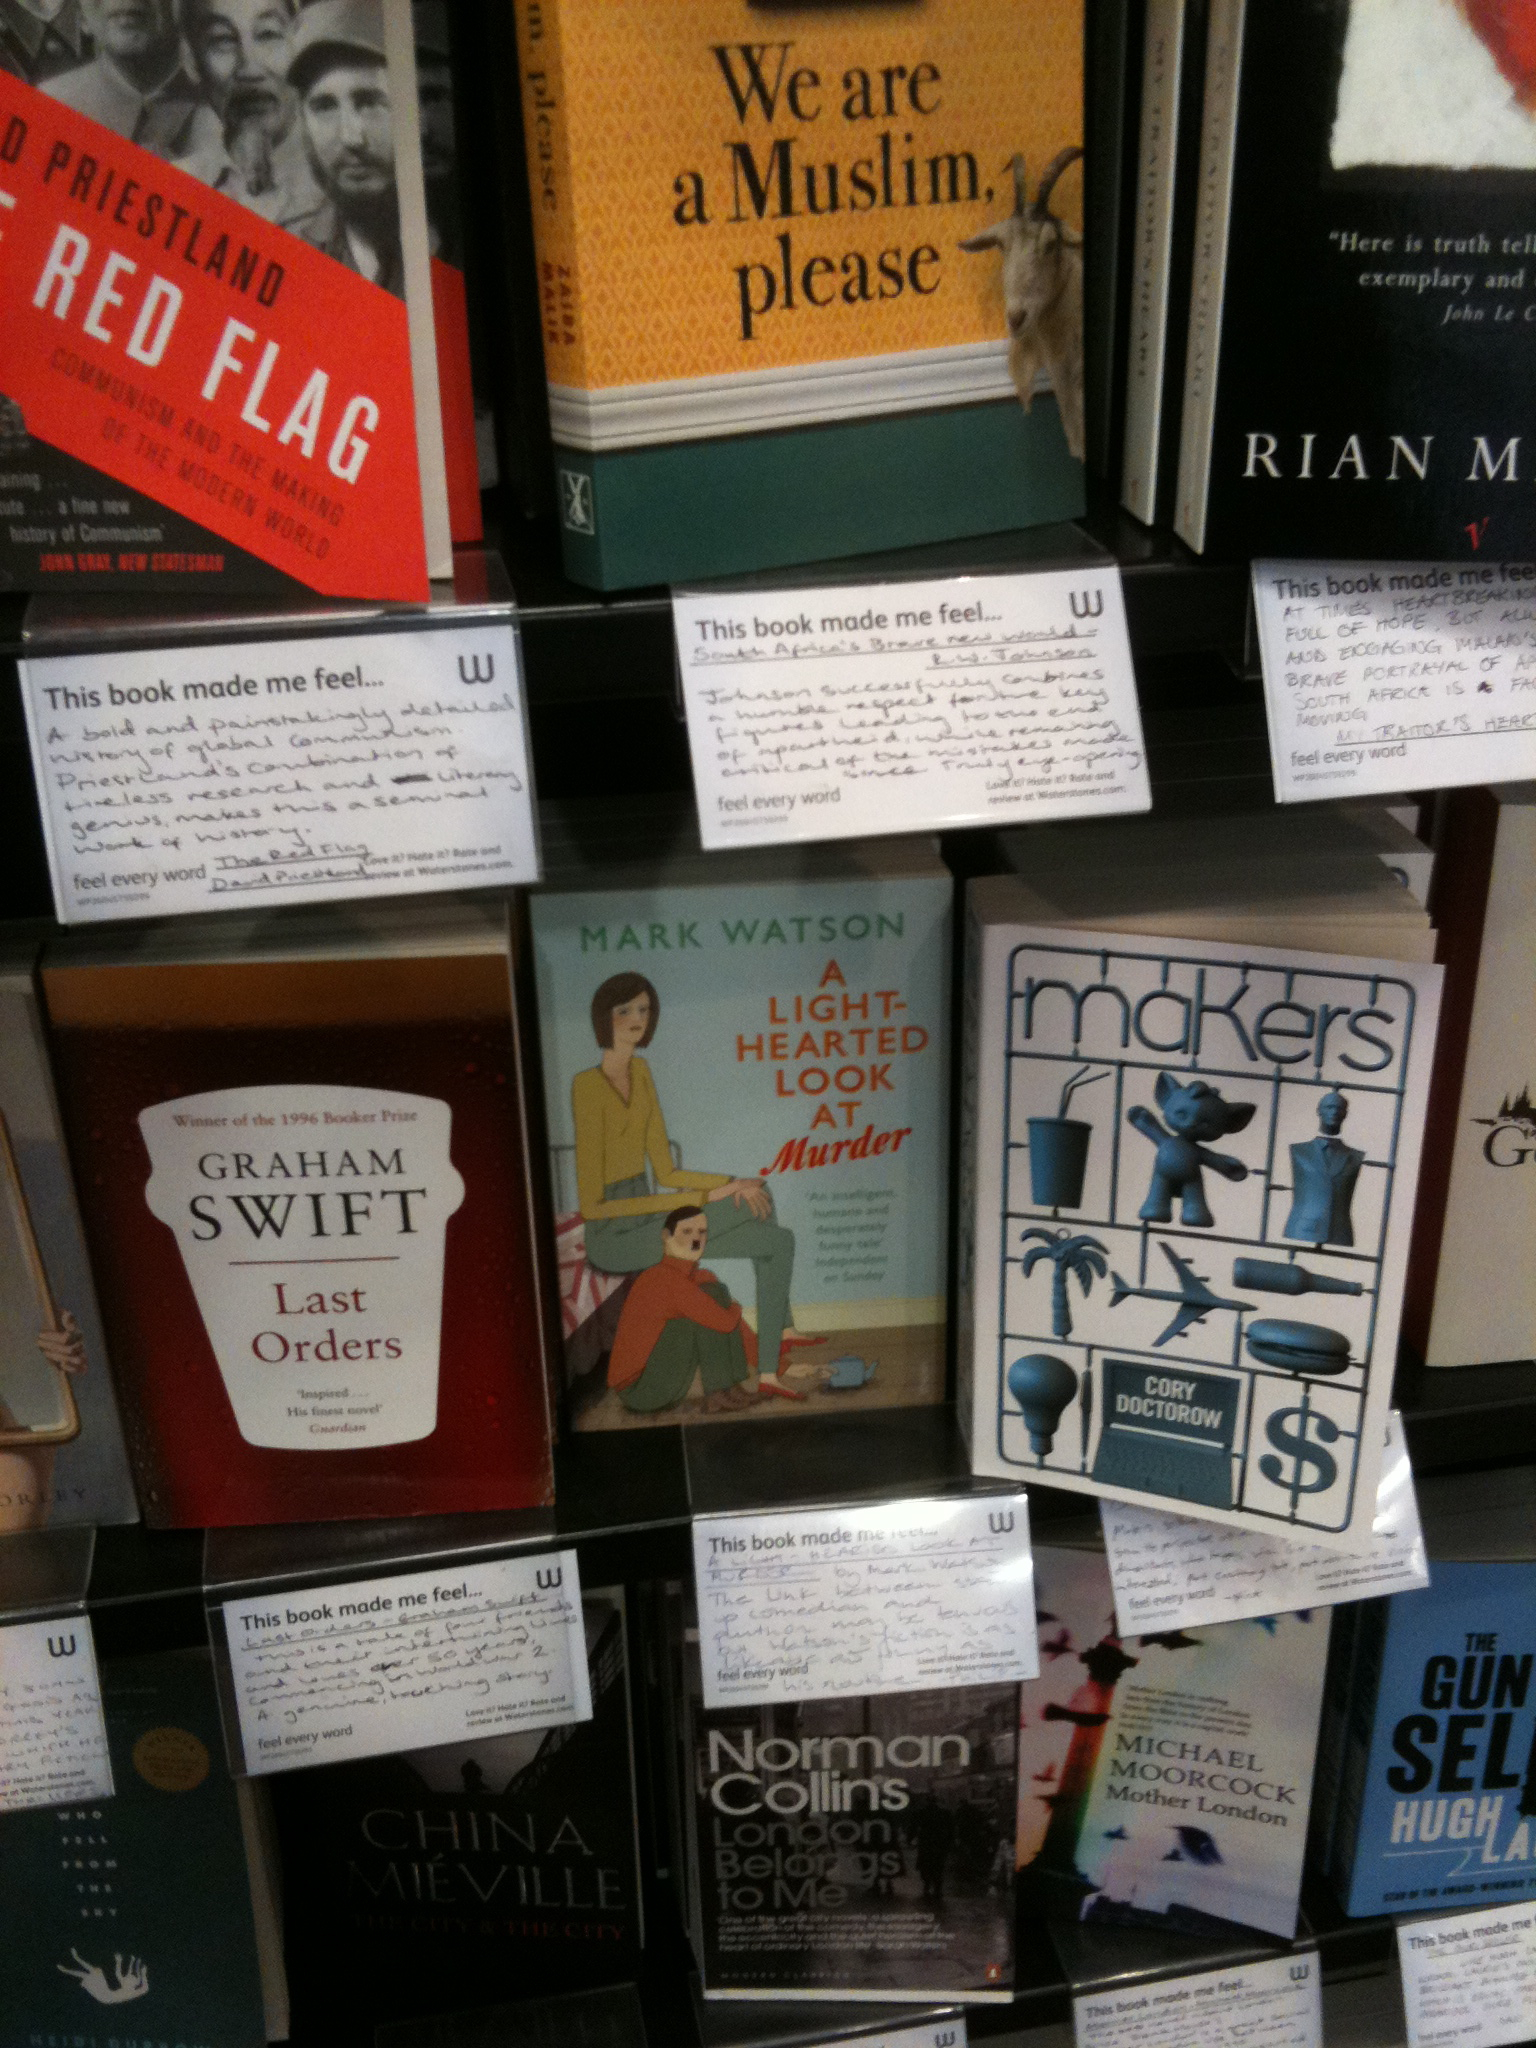 642 tiny things to write about waterstones online